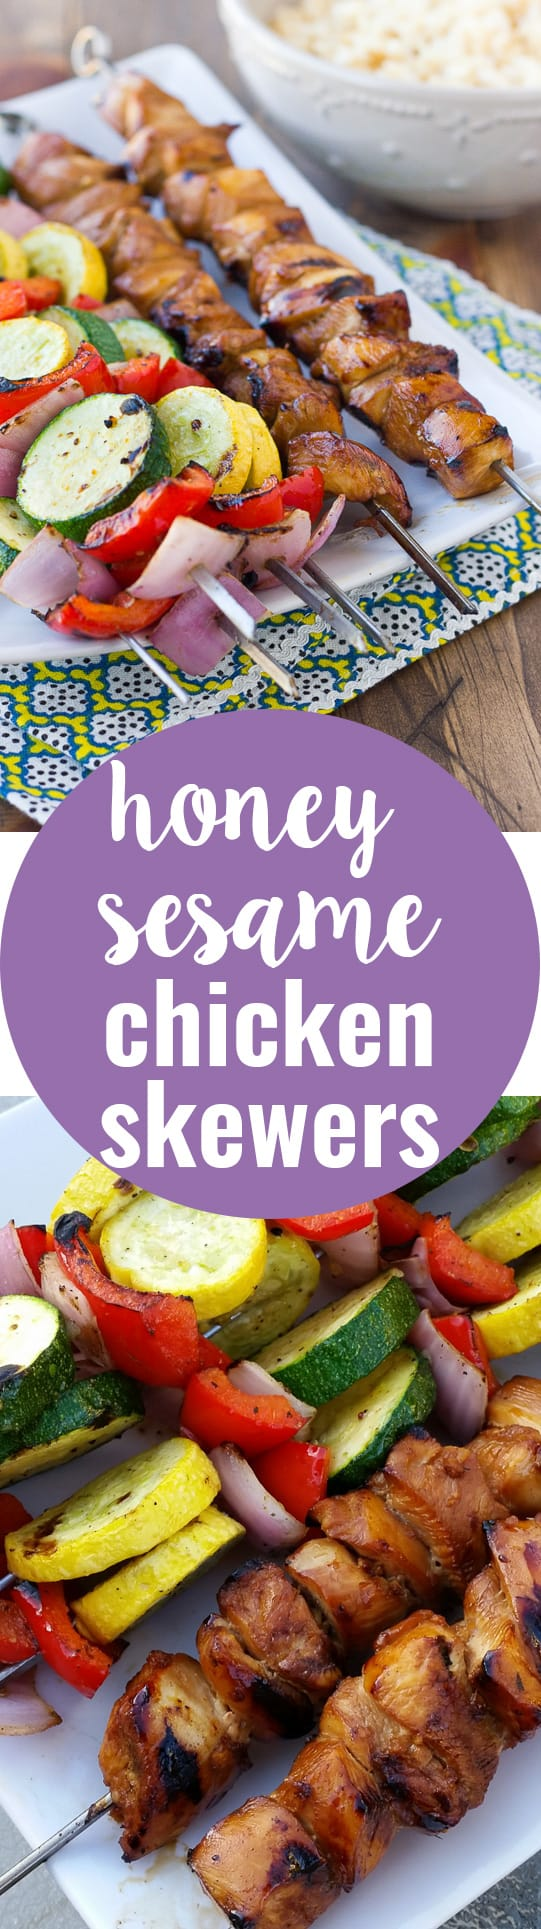 Honey Sesame Chicken Skewers! An unbelievably delicious marinade!